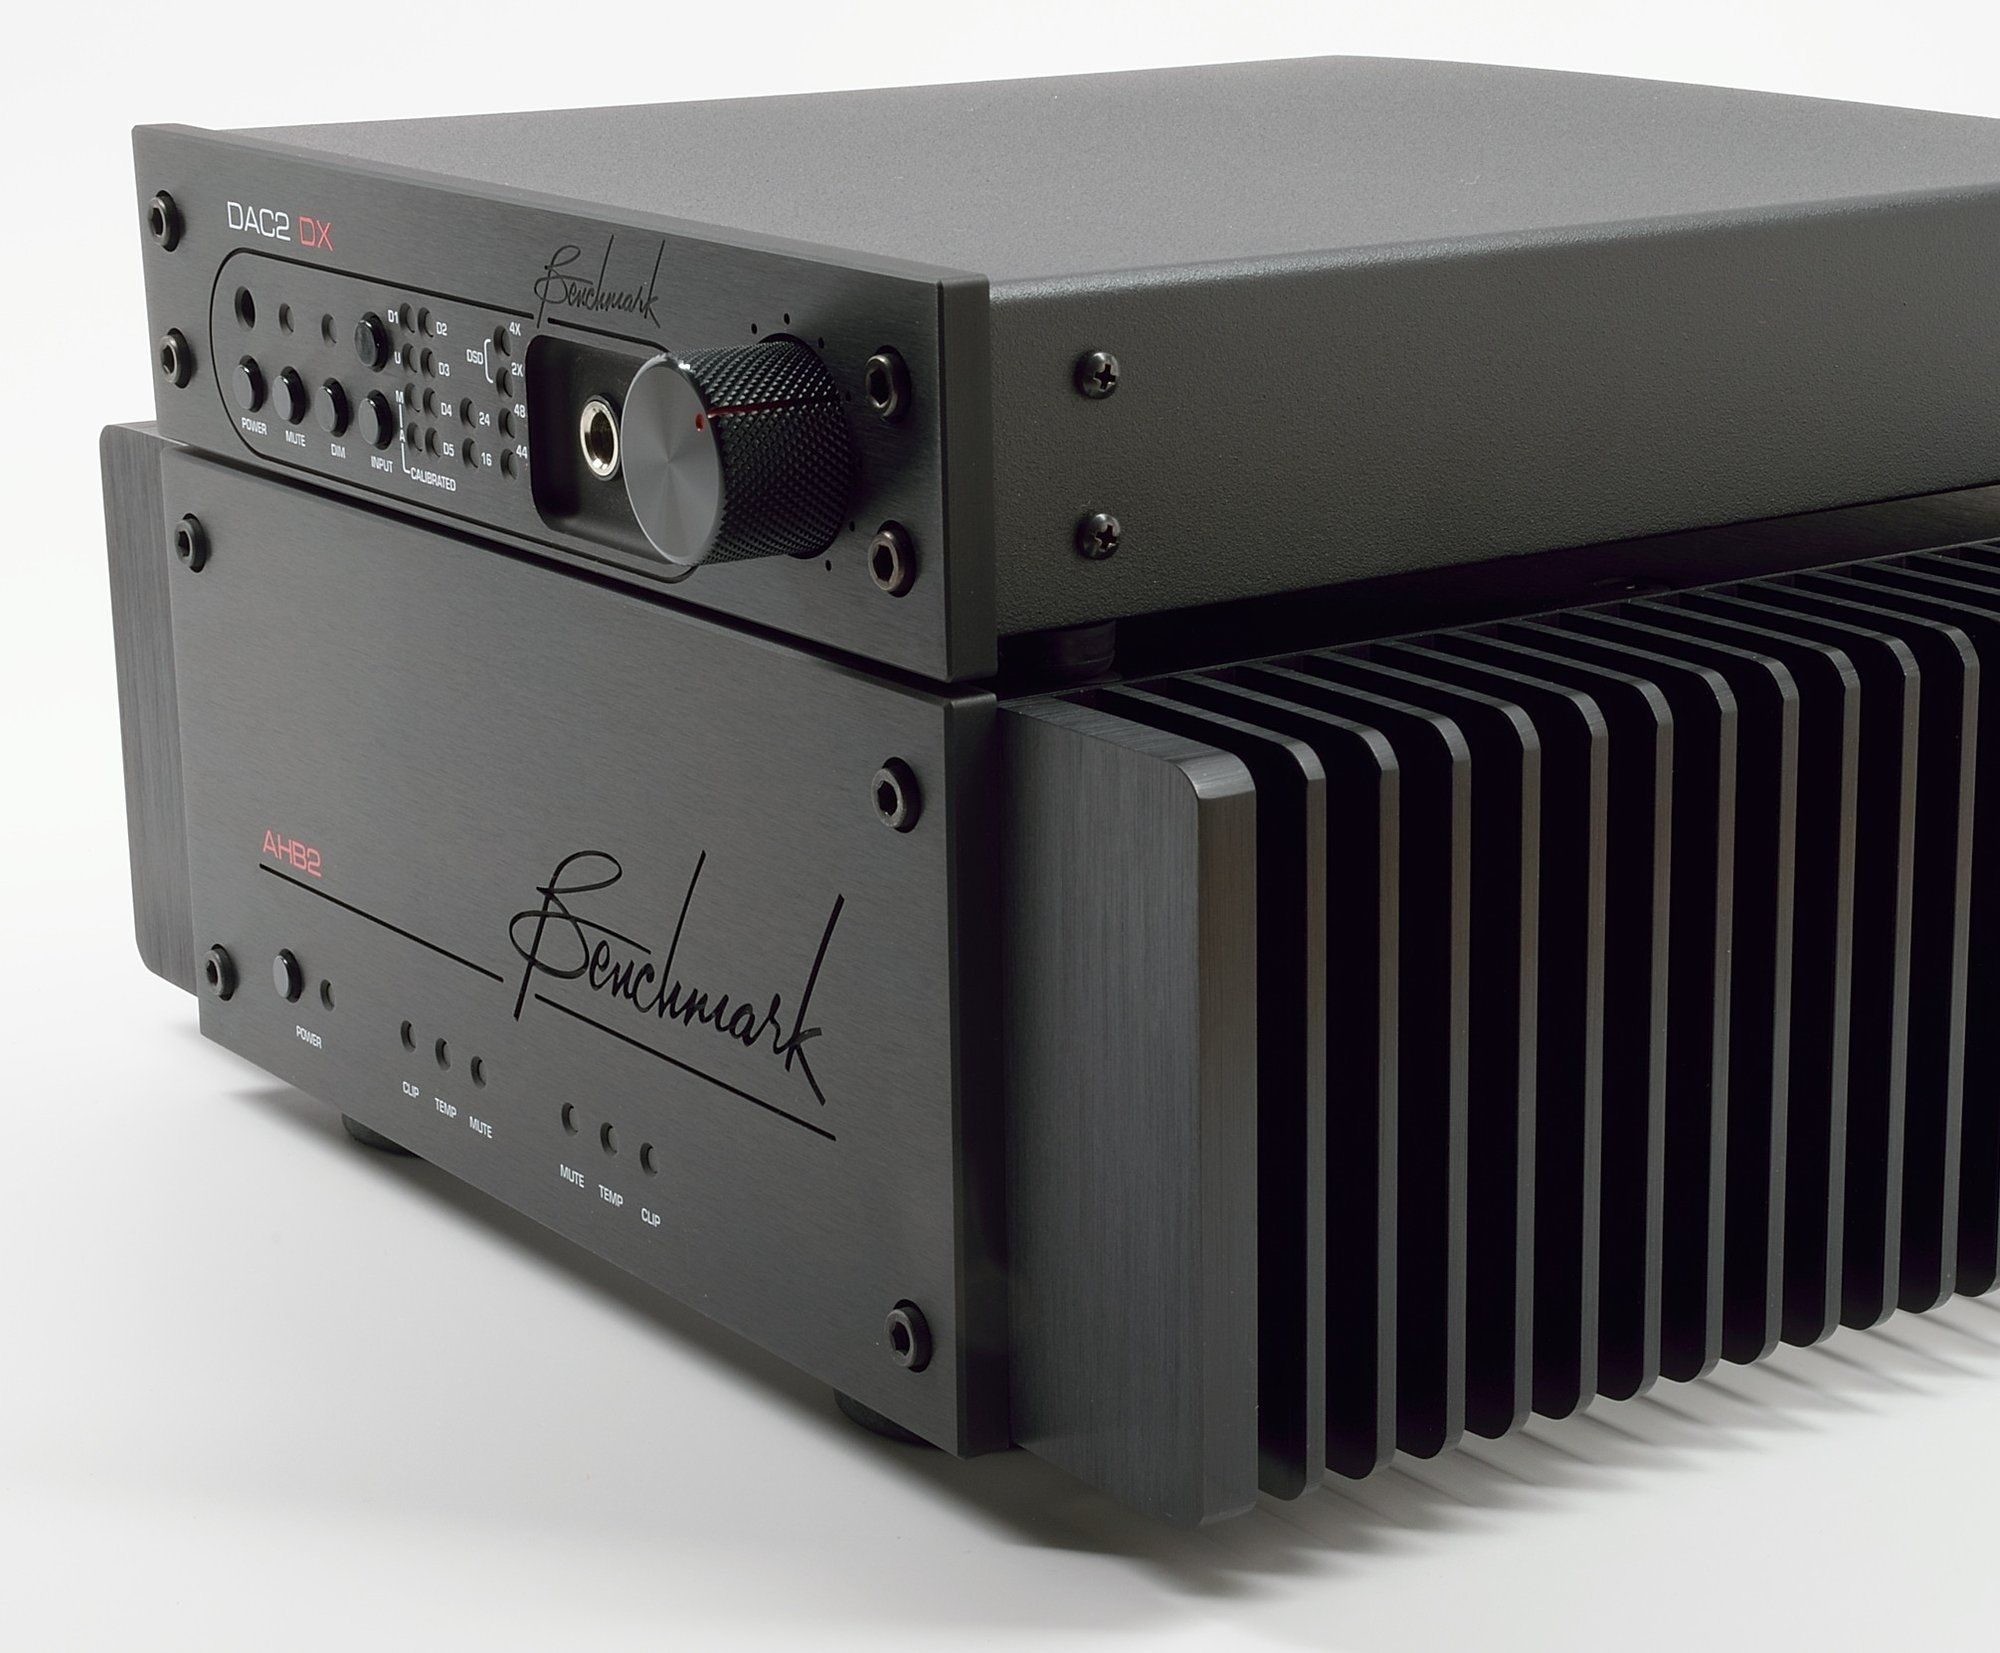 Benchmark Ahb2 Power Amplifier Power Amplifiers Amplifier System Monitor